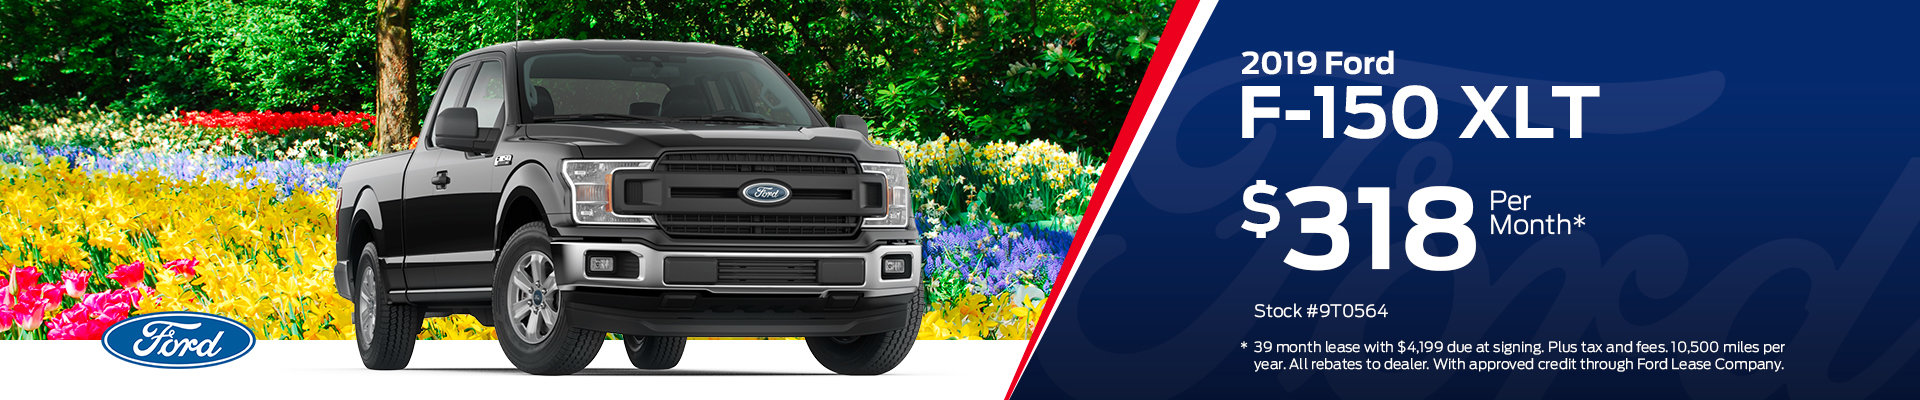 Wichita residents get a great deal on the 2019 Ford F150 XL only at Rusty Eck Ford!